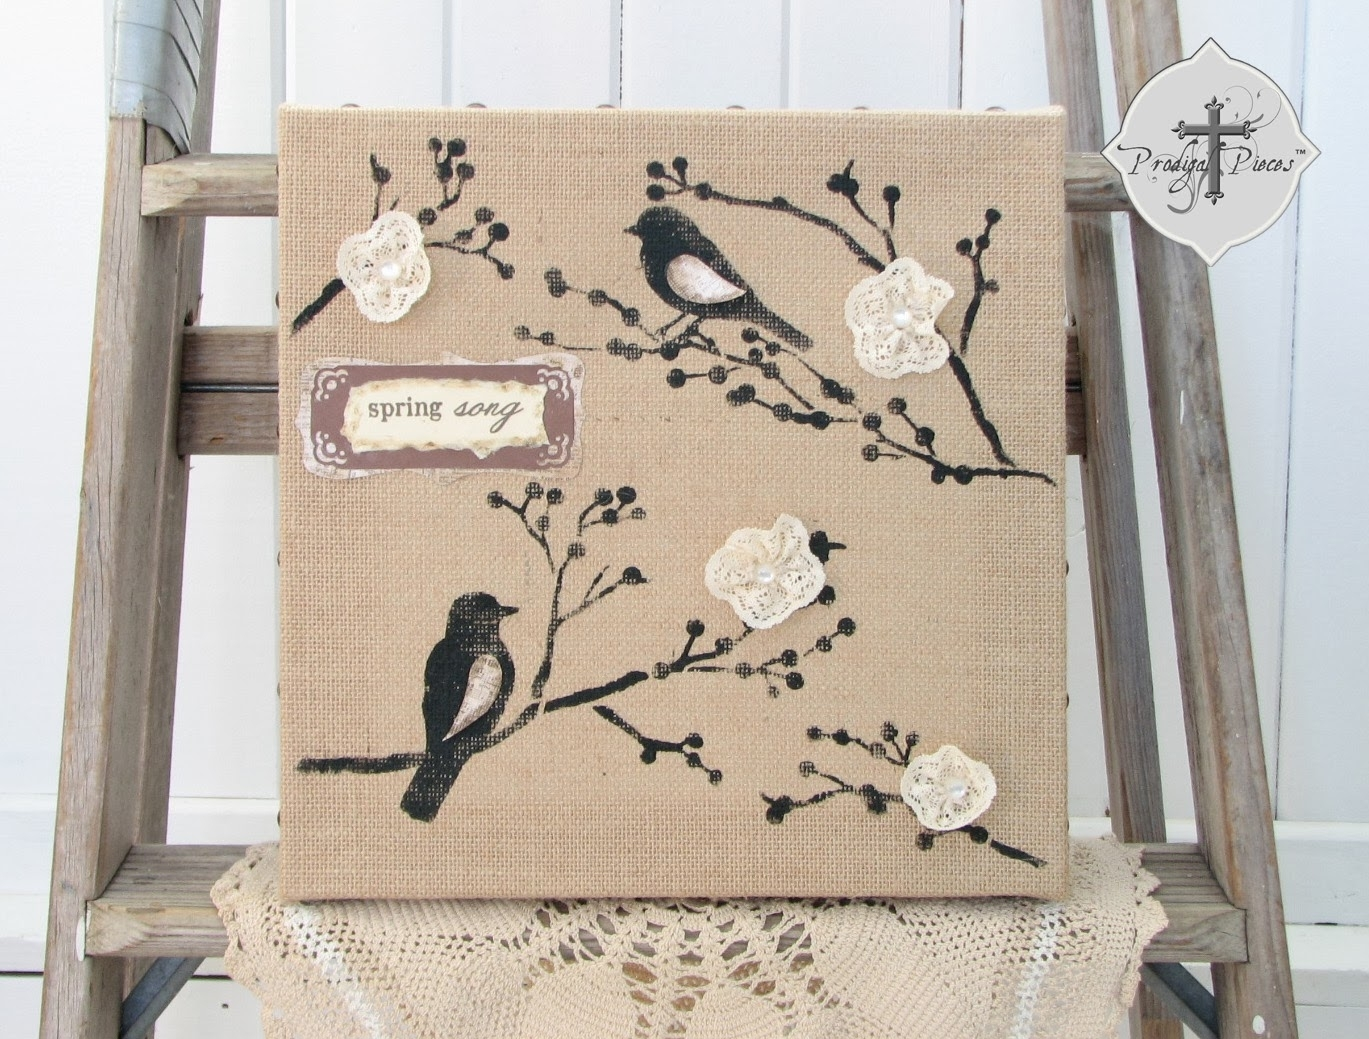 19 Inspirational Burlap Canvas Ideas | The Turquoise Home Within Best And Newest Burlap Fabric Wall Art (View 8 of 15)